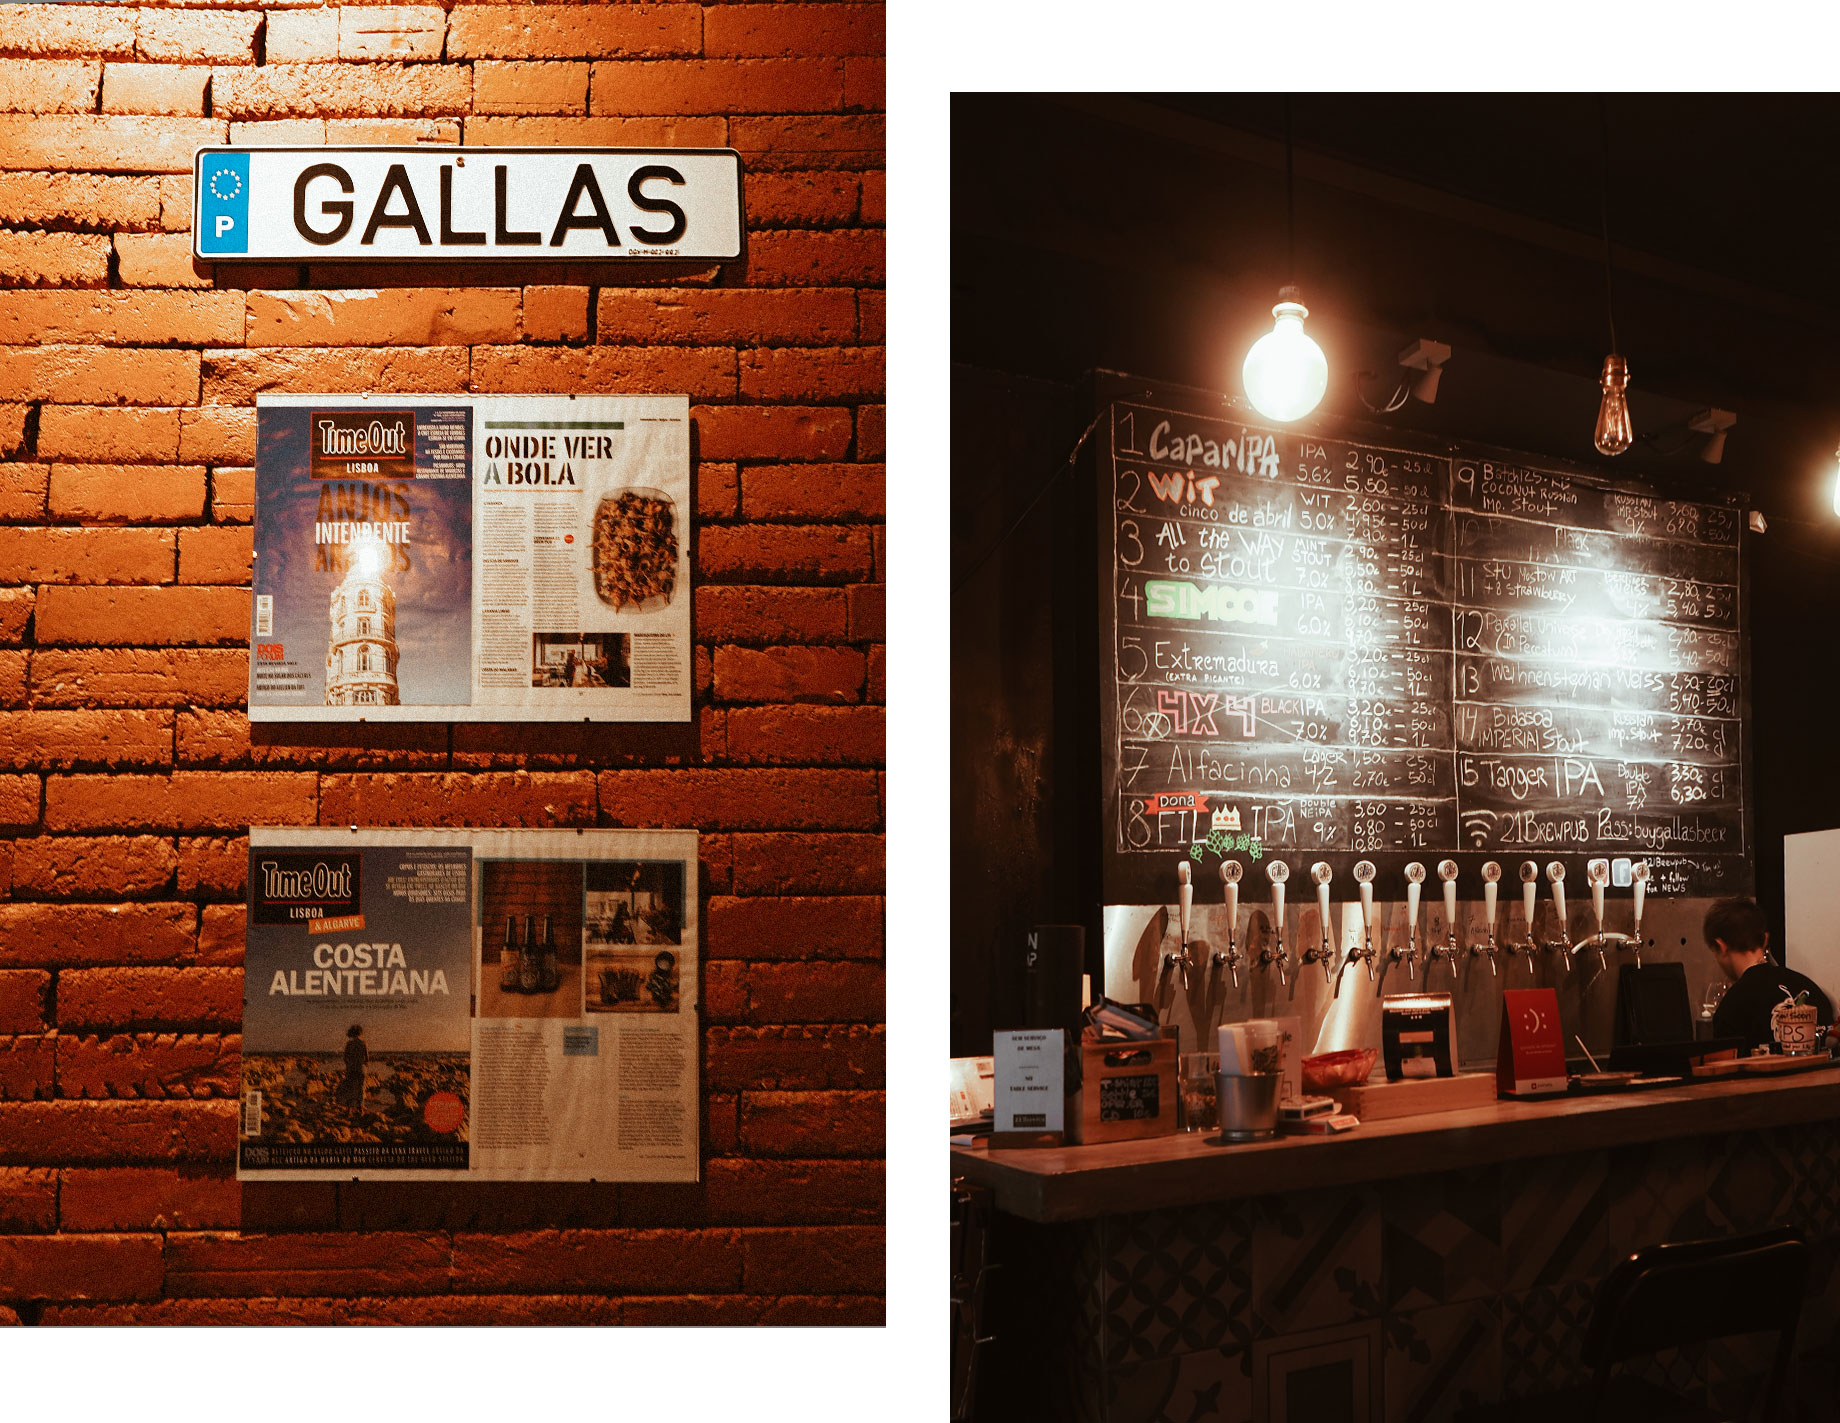 21 Brewpub Gallas